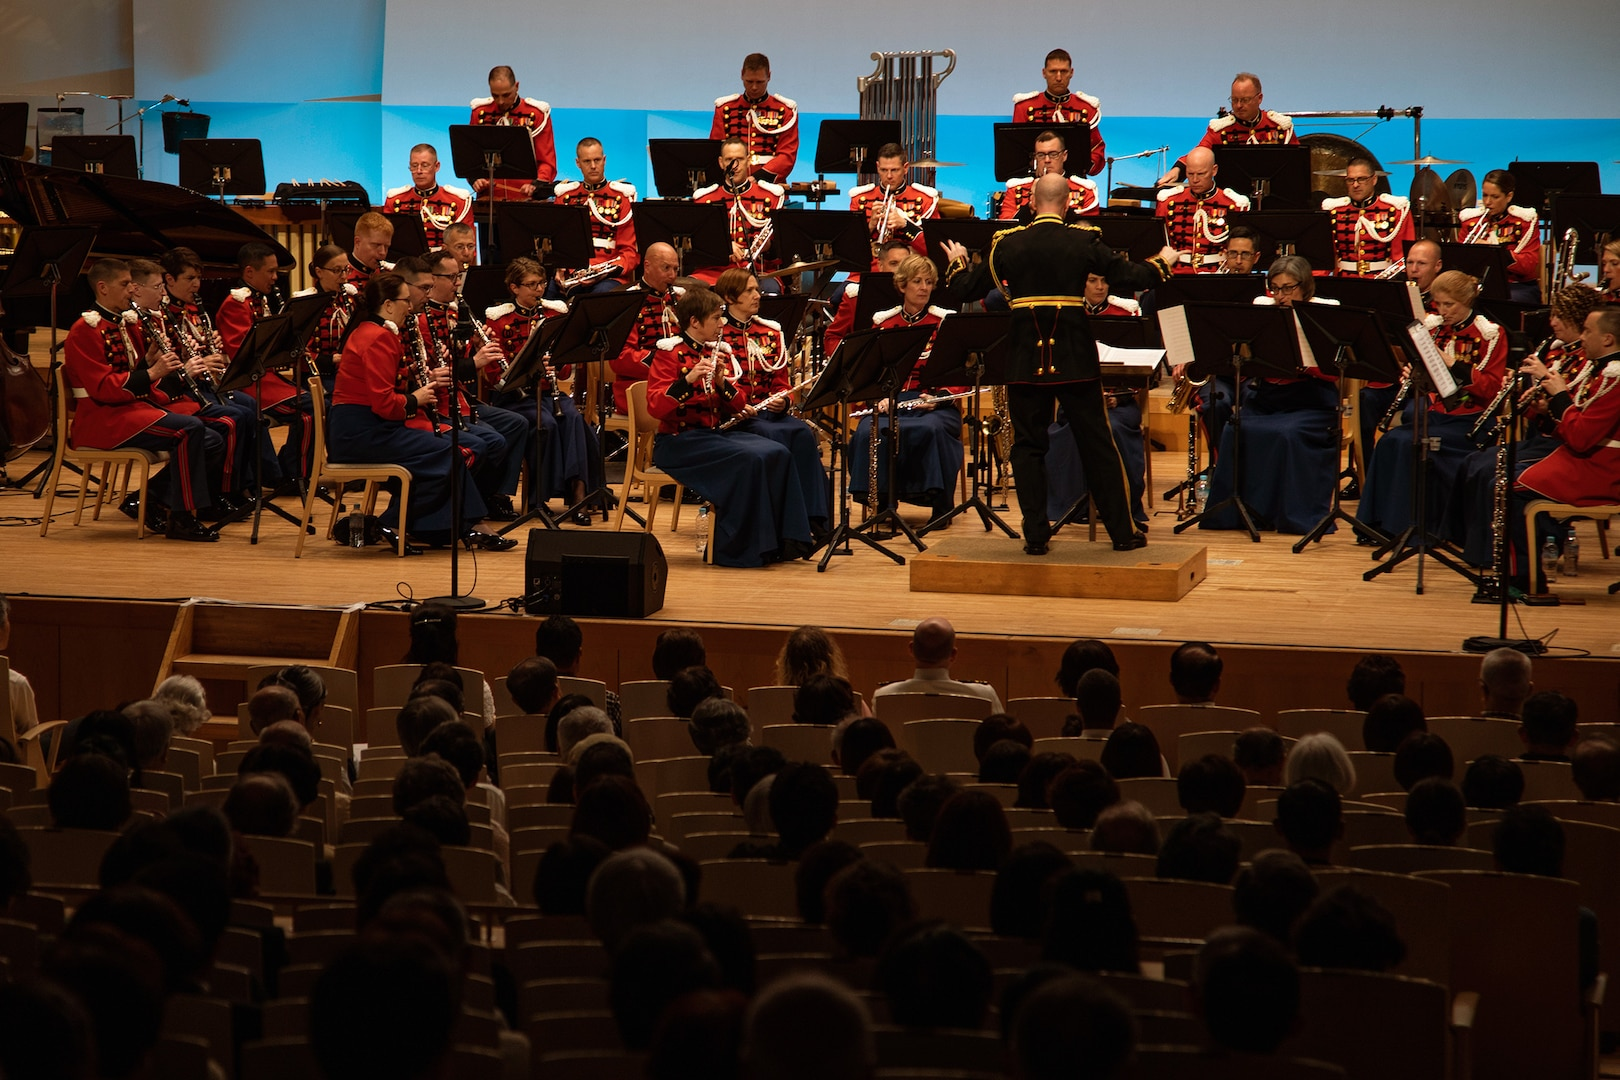 """History in the making: """"The President's Own"""" United States Marine Band Visits Japan for First Time"""